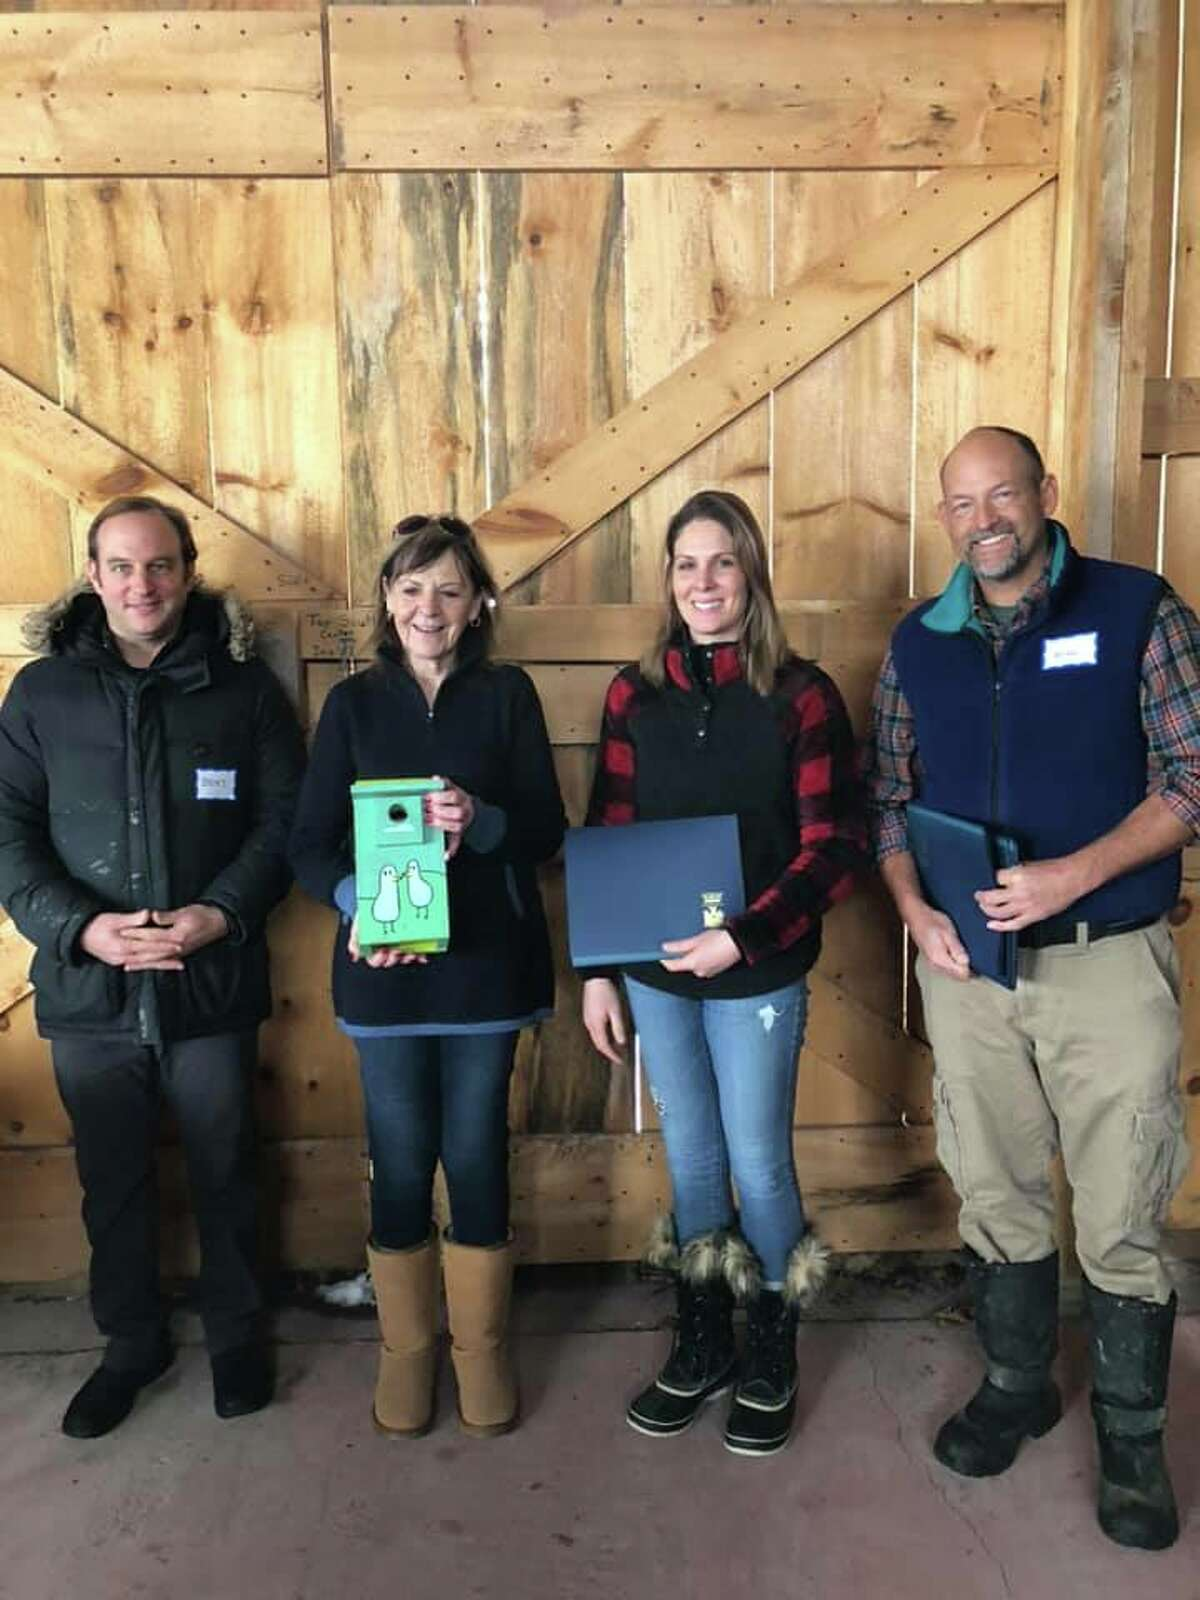 The Barber Family of Northumberland, Benj Gleeksman, Linda and Amber Barber, pose with Saratoga PLAN Chair Will Orthwein at the PLAN's celebration of Conservation Heroes.